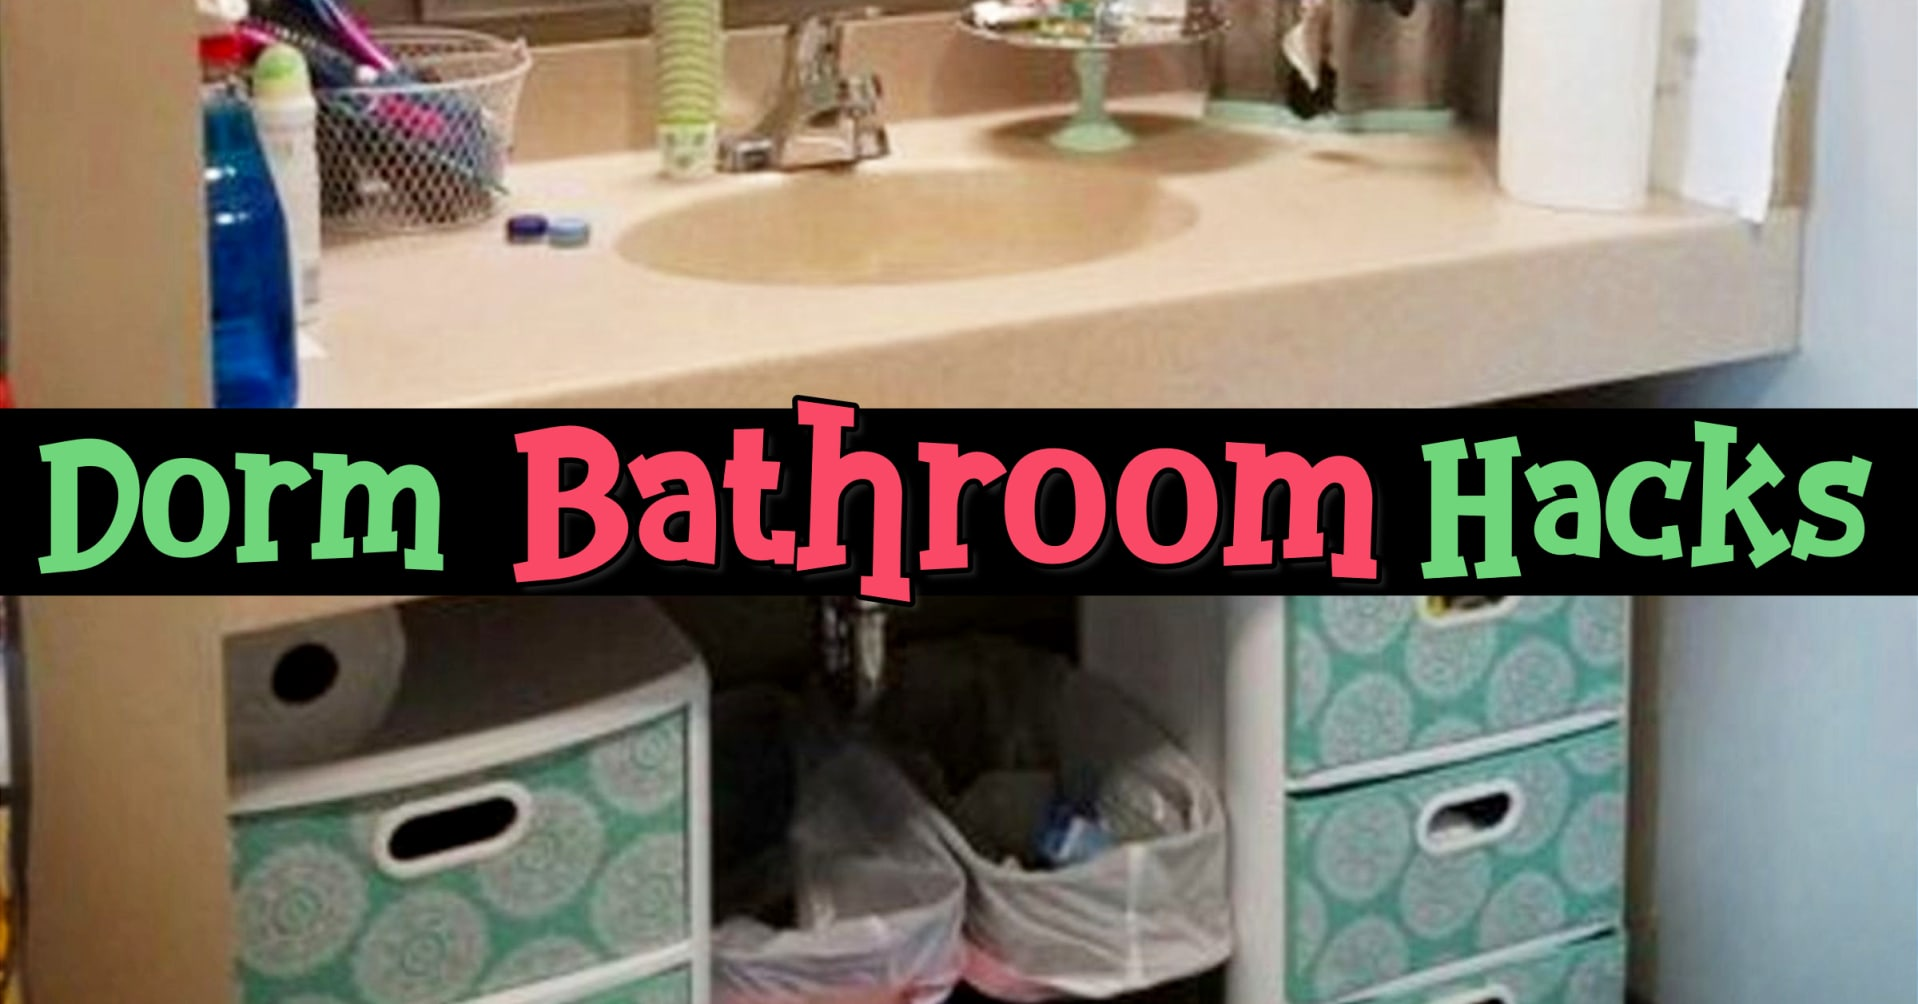 Small bathroom ideas - dorm bathroom storage and organization ideas for college community bathrooms, shared bathrooms, suitemate bathrooms with roommates and more dorm bathroom hacks and organizing ideas